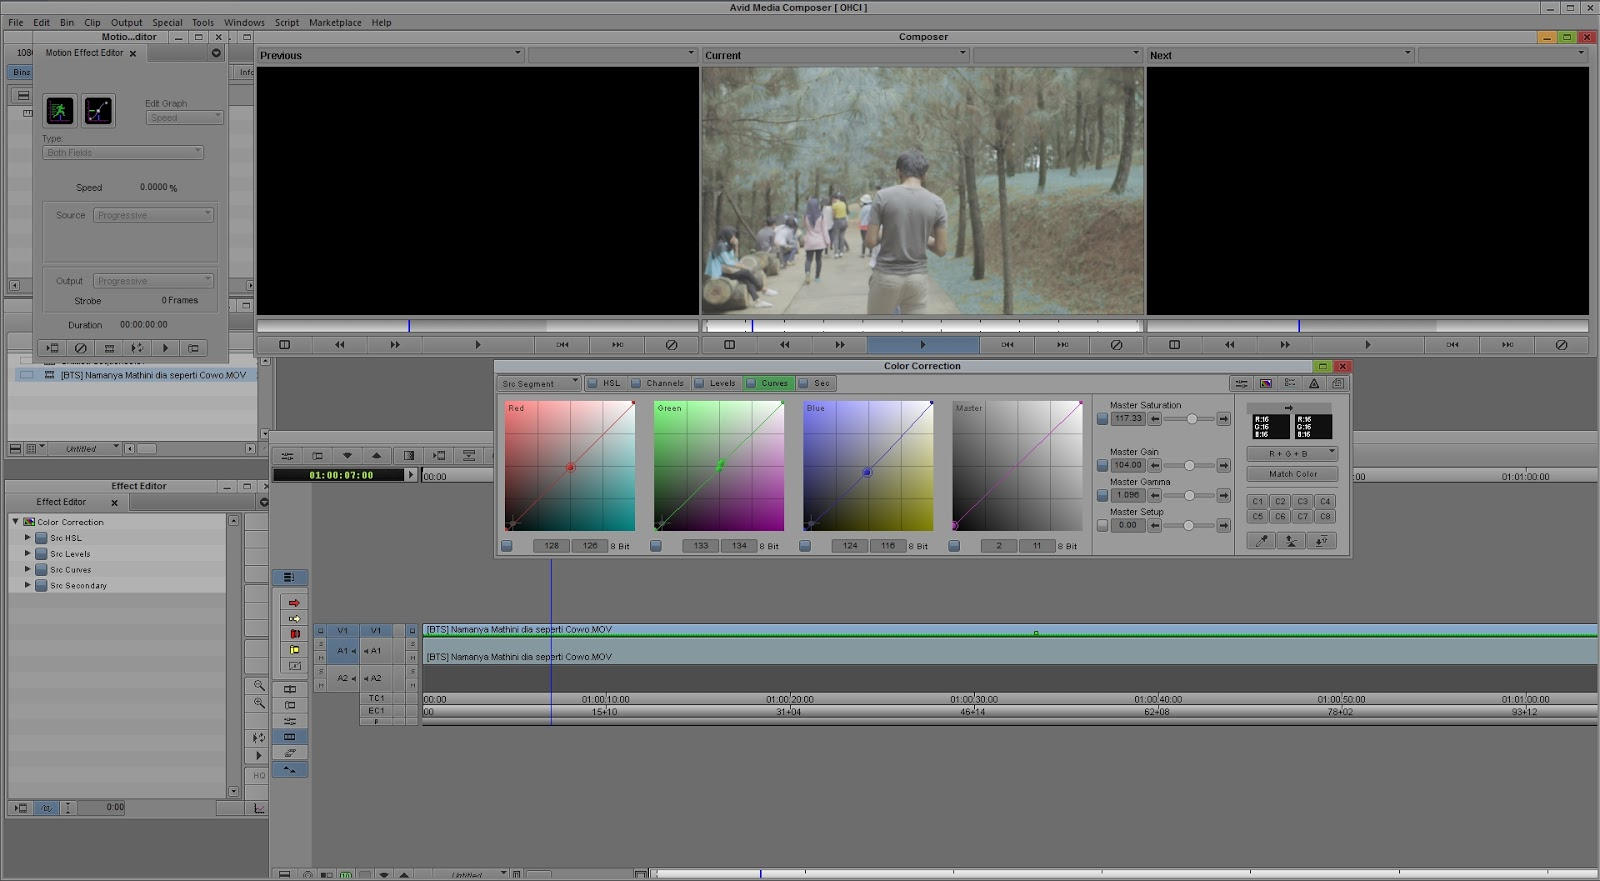 avid media composer 5.5 system requirements